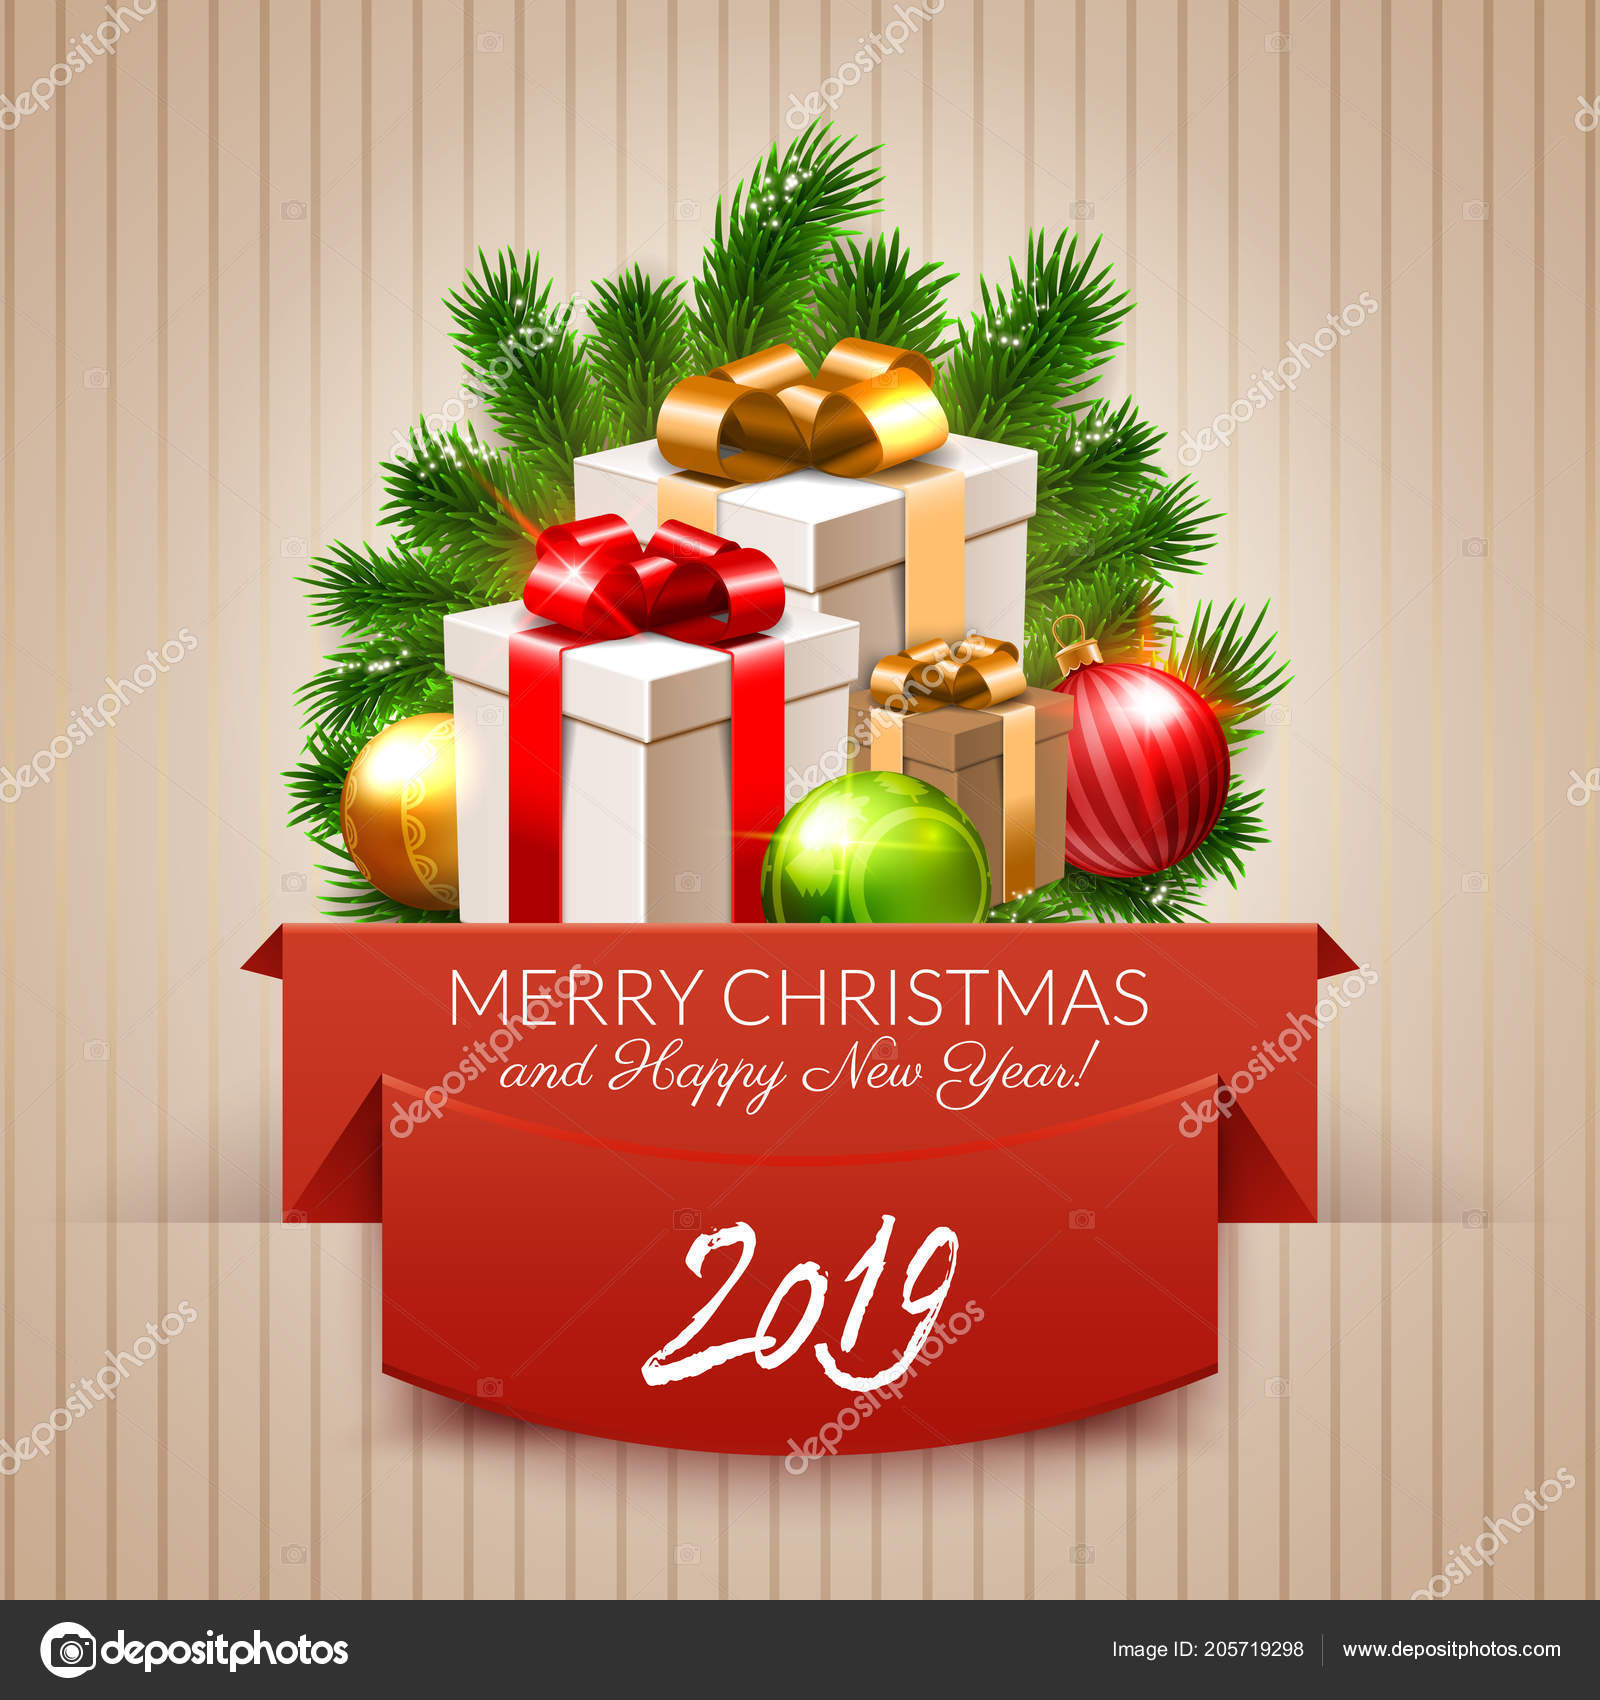 Merry Christmas Happy New Year 2019 Postcard Design Gifts Tree ...